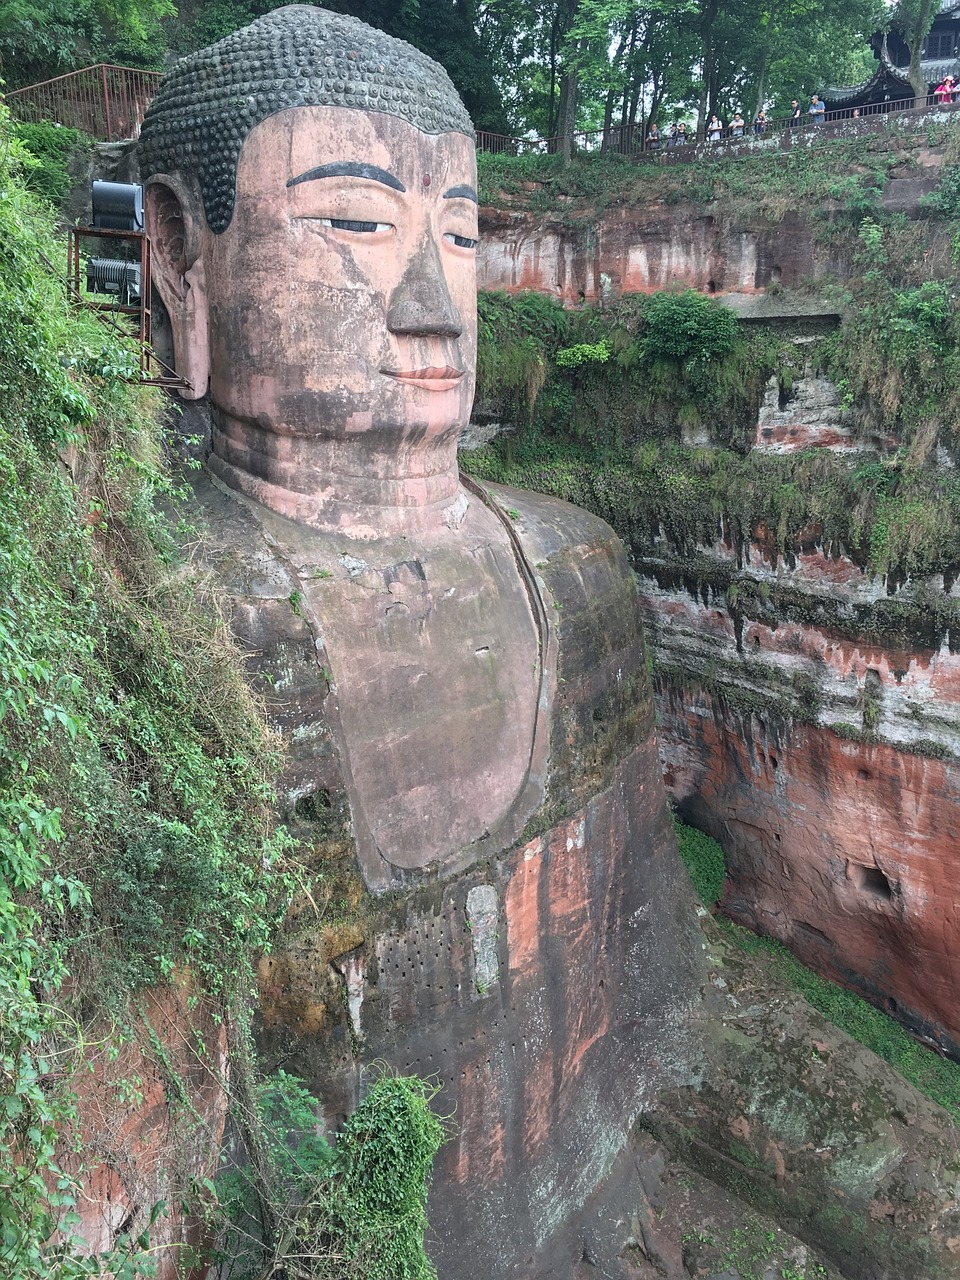 giant buddha,sichuan,china,southwest china,sichuan province,holiday,travel,subtropics,buddha,free pictures, free photos, free images, royalty free, free illustrations, public domain